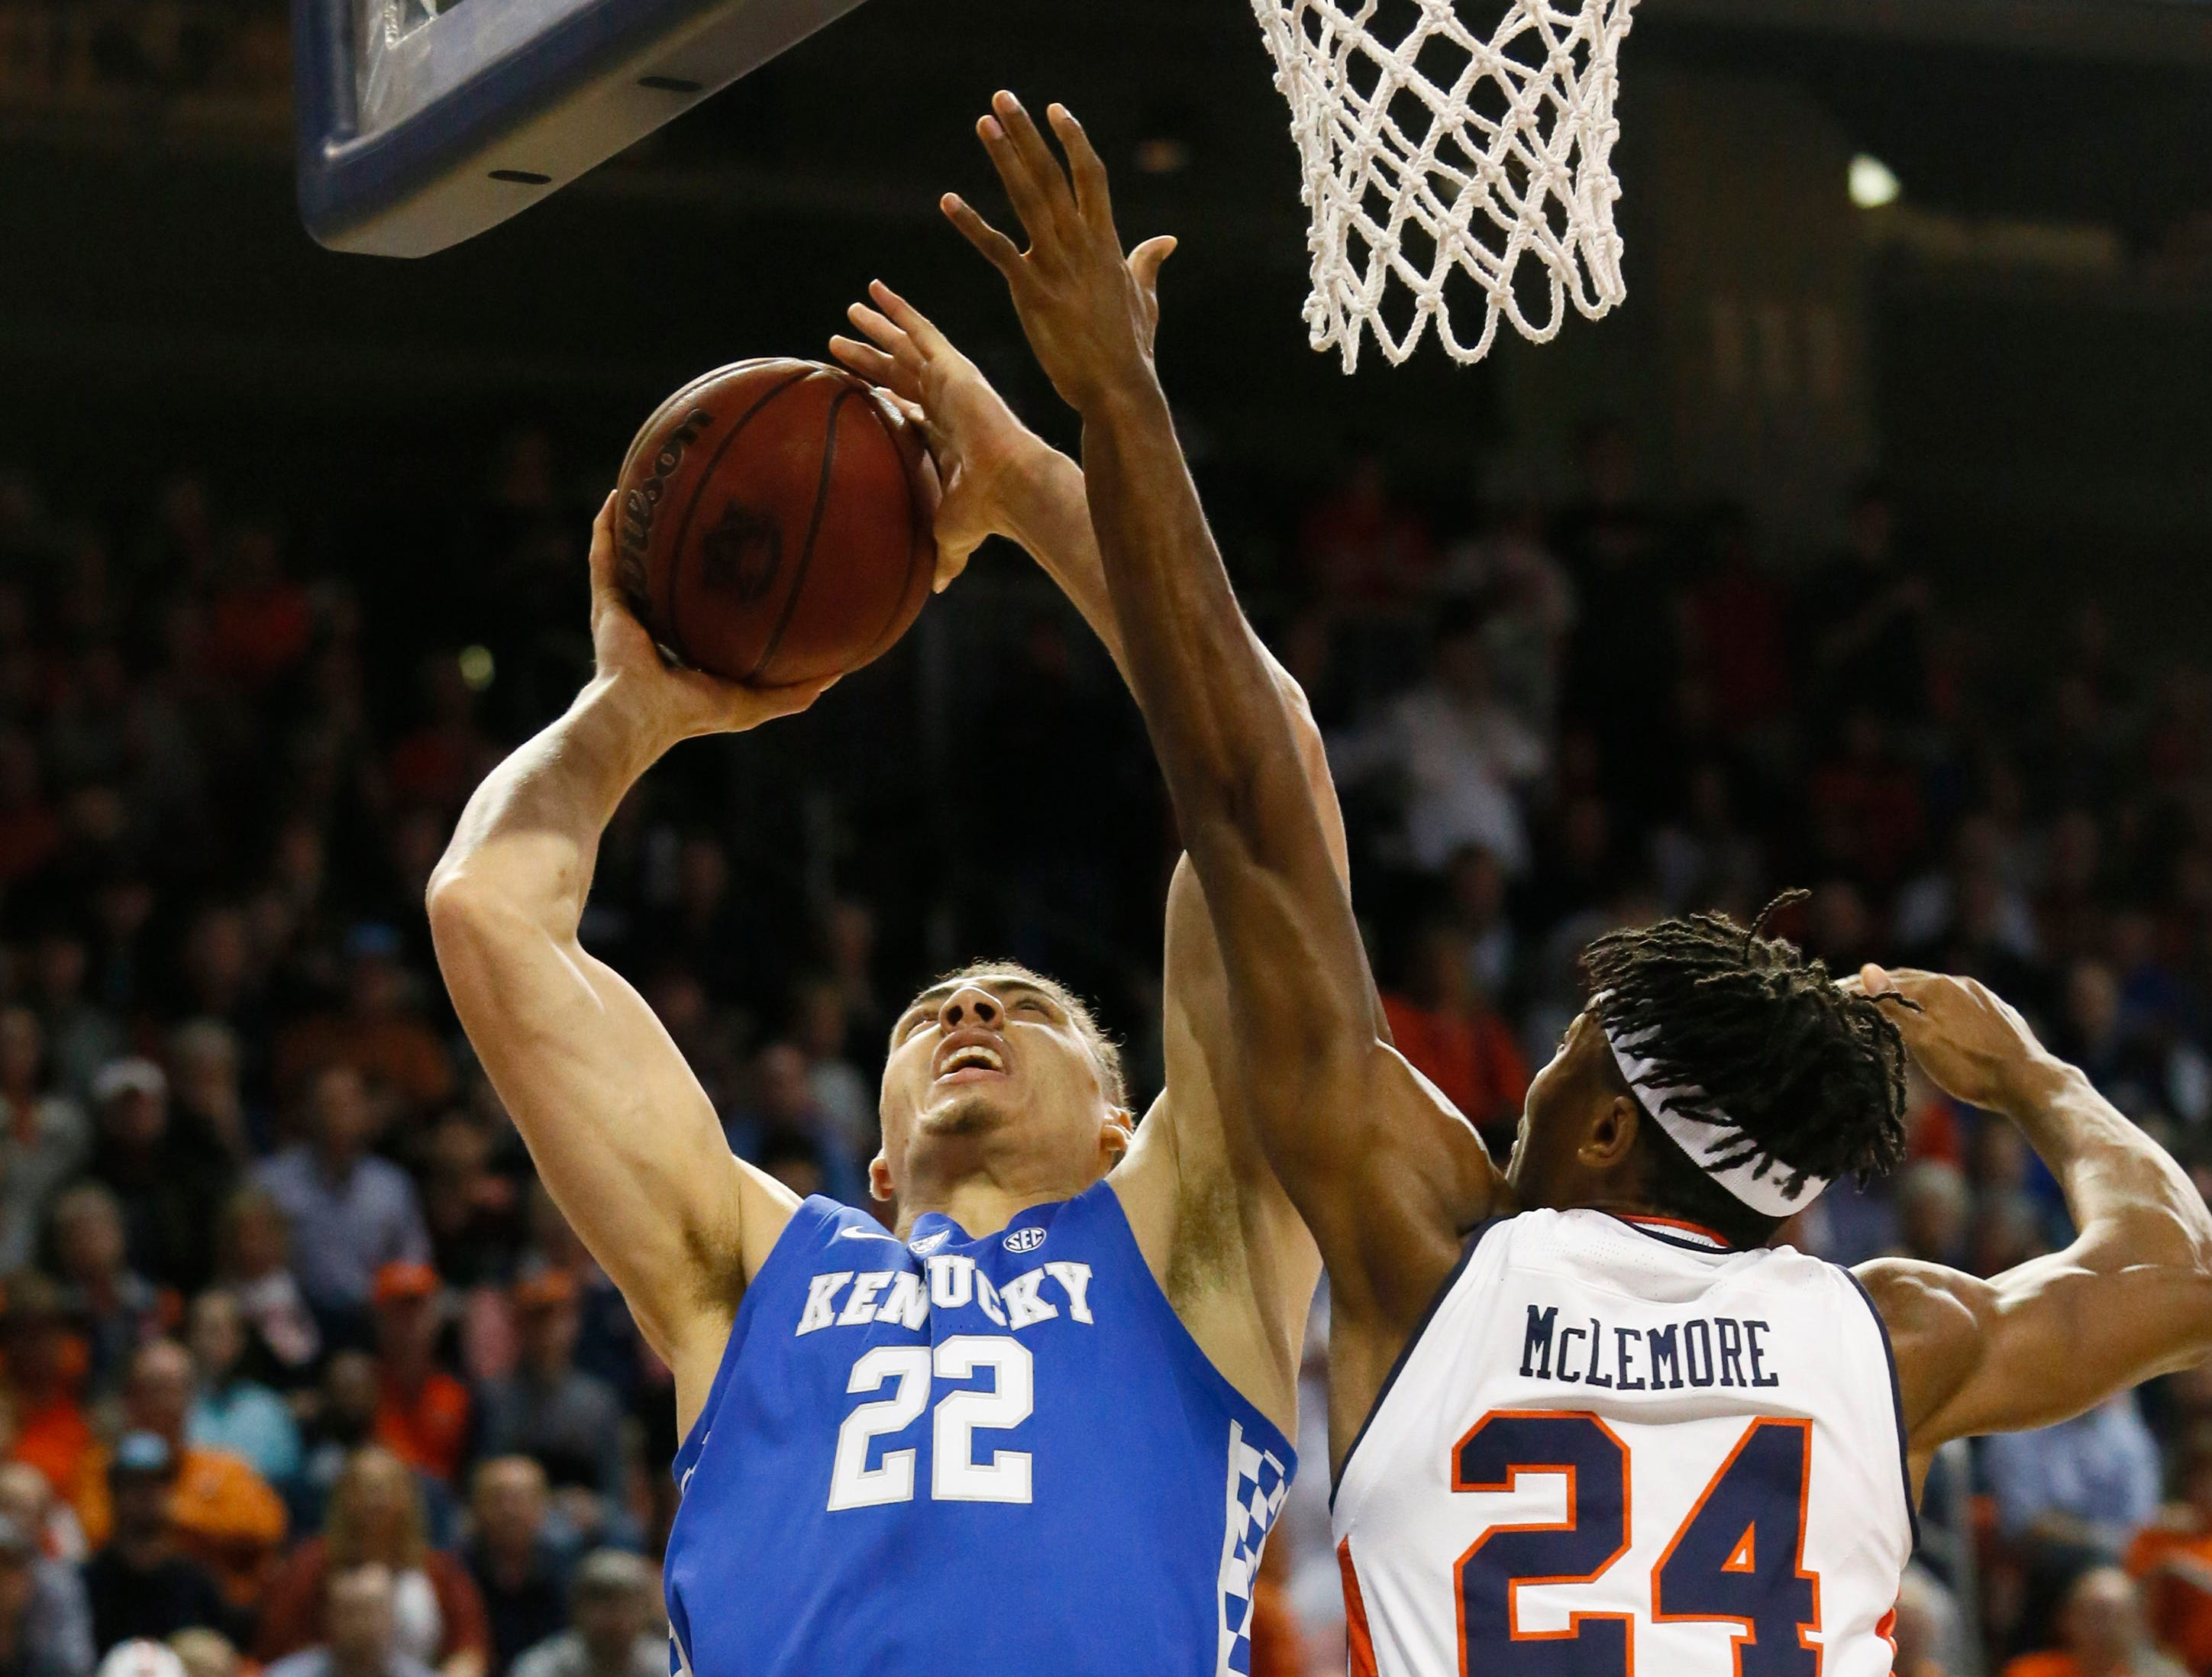 Jan 19, 2019; Auburn, AL, USA; Kentucky Wildcats forward Reid Travis (22) takes a shot against Auburn Tigers forward Anfernee McLemore (25) during the first half at Auburn Arena. Mandatory Credit: John Reed-USA TODAY Sports